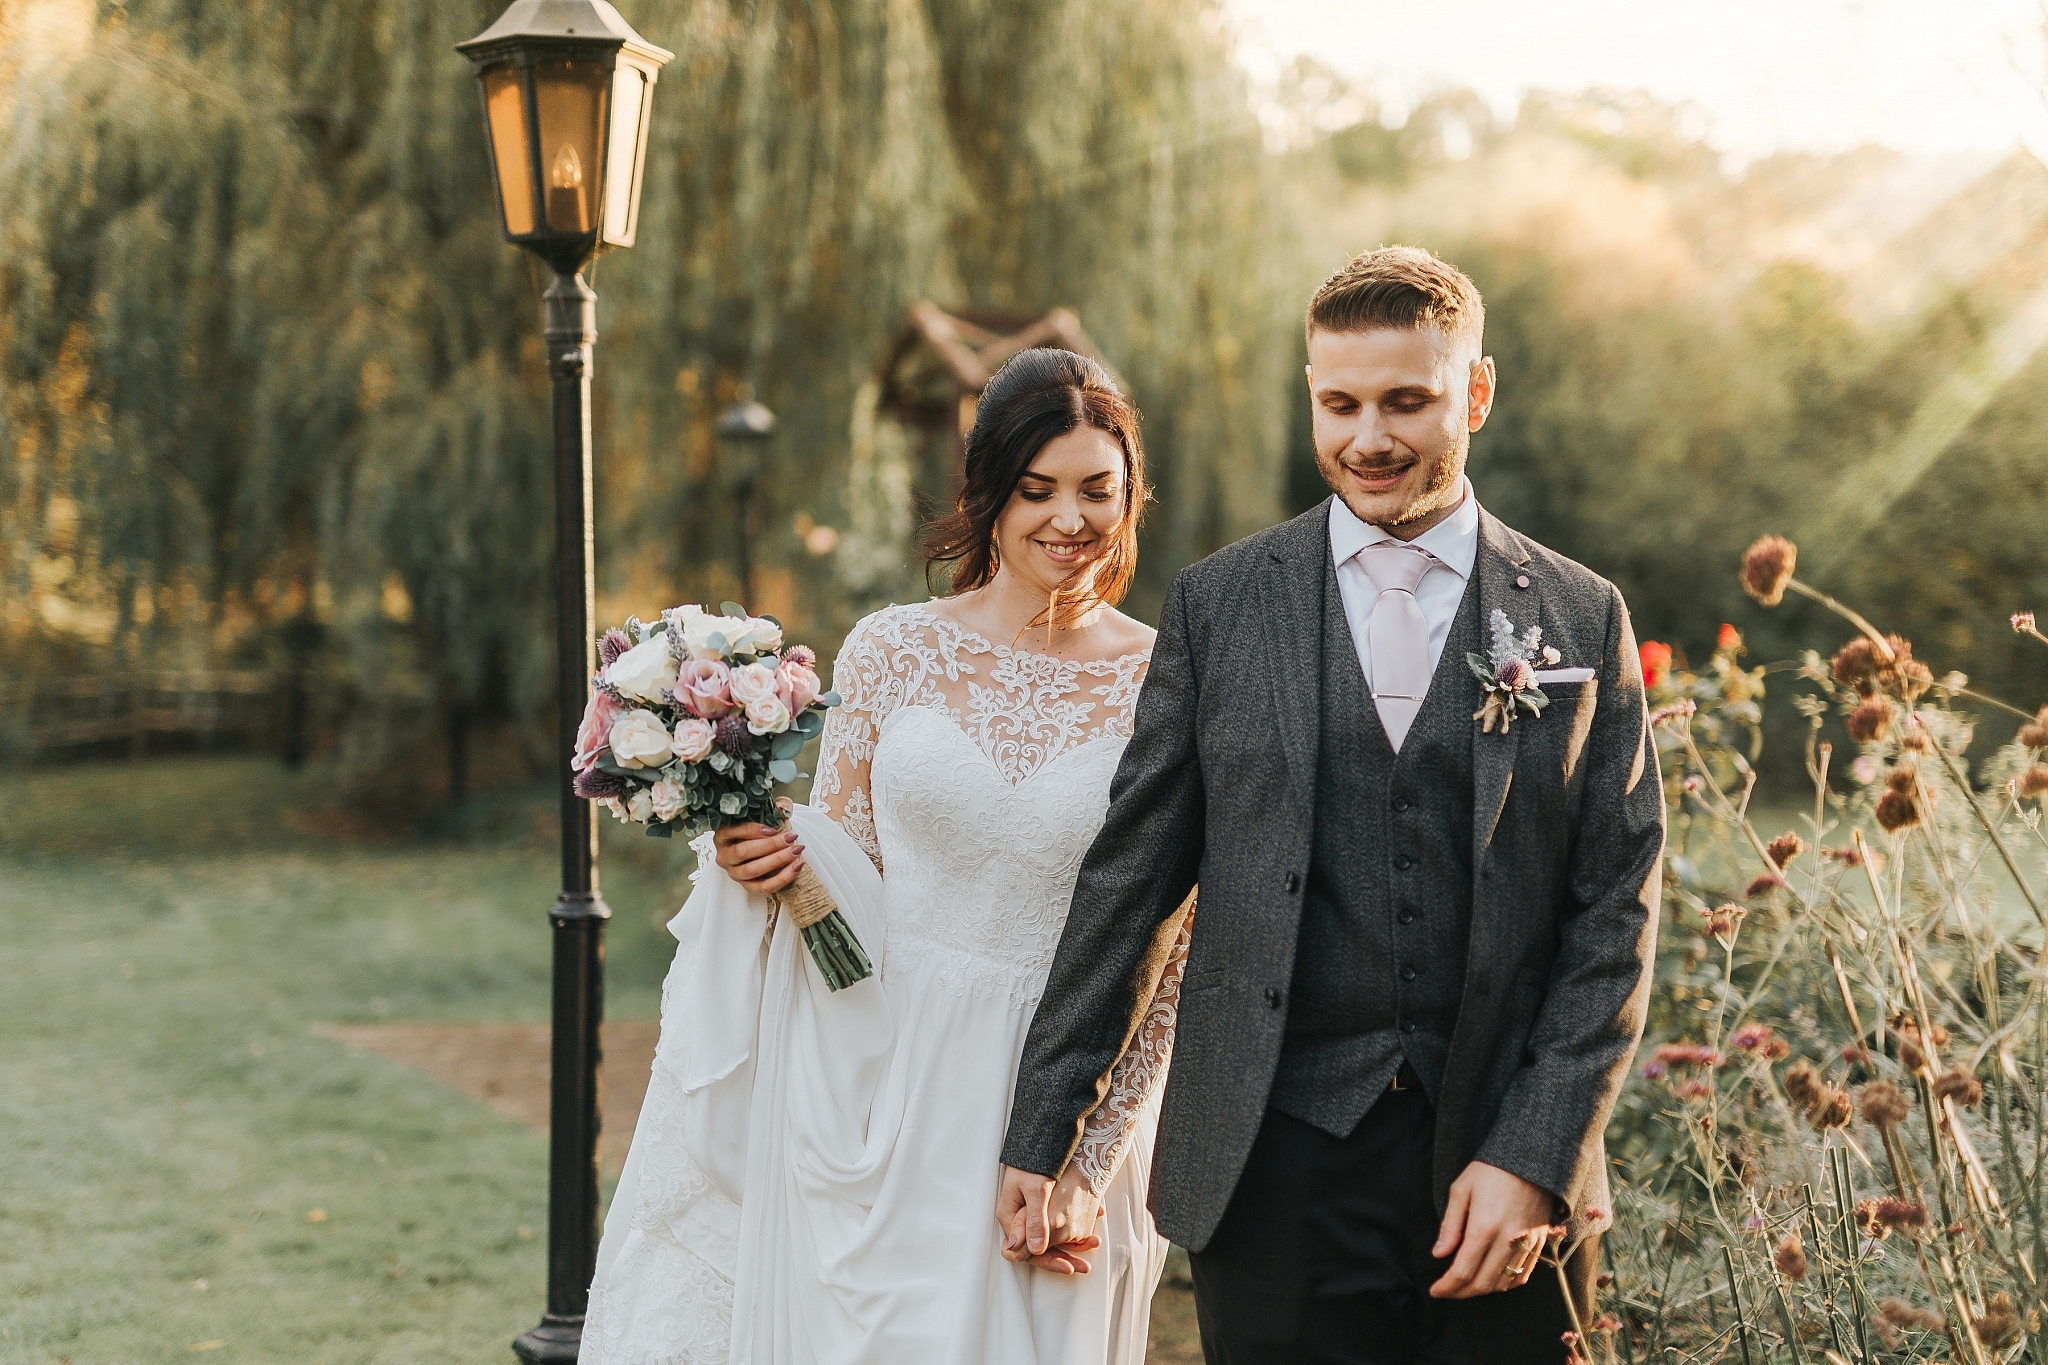 Country pub wedding kent Sam and Tom The Plough At Leigh Wedding Photography 49